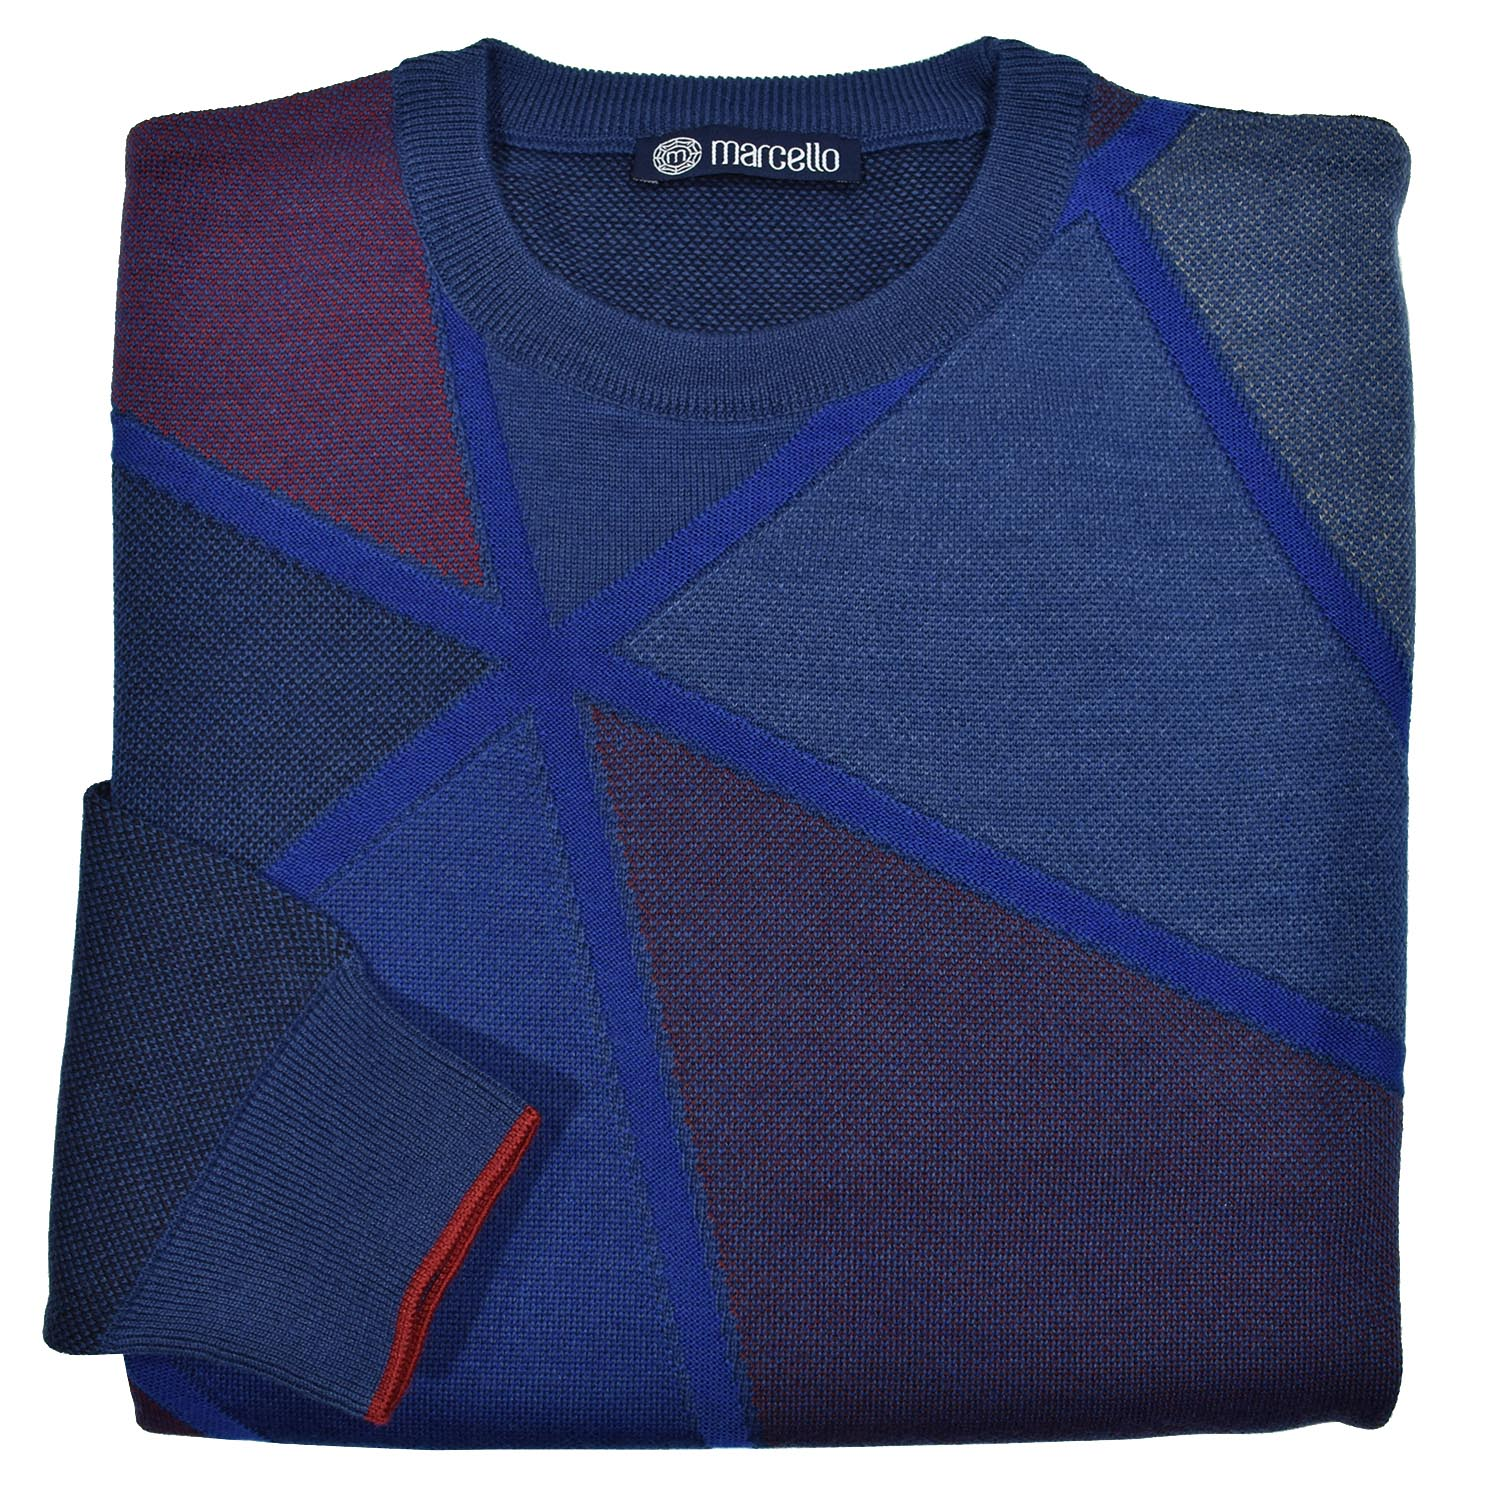 719 Jewel Mosaic Knit - Marcello Sport